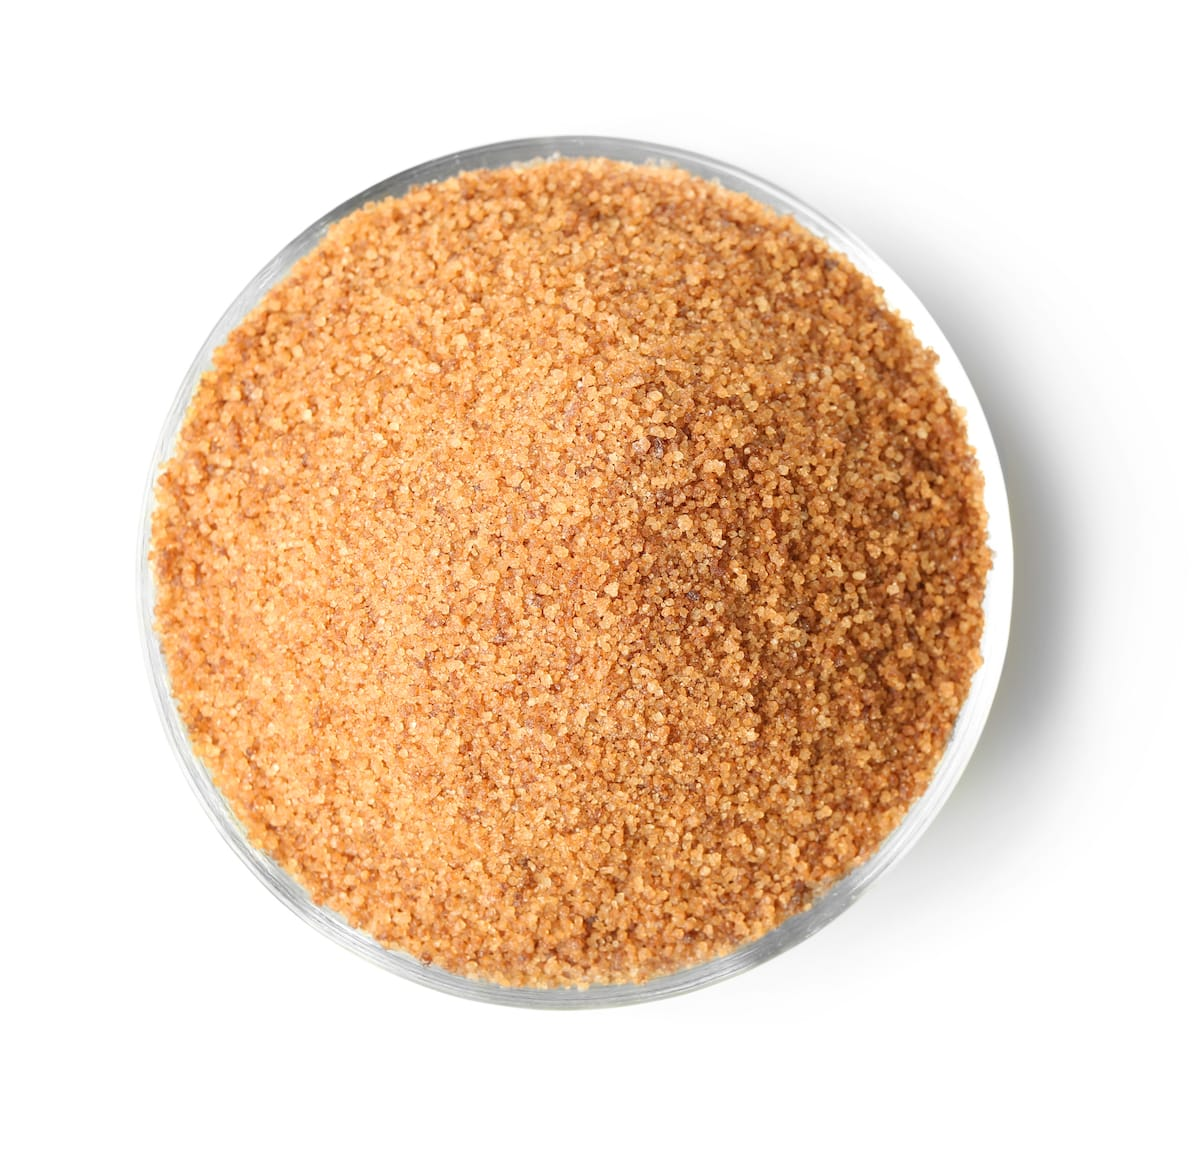 Cooking With Brown Sugar: The Do's and Don'ts